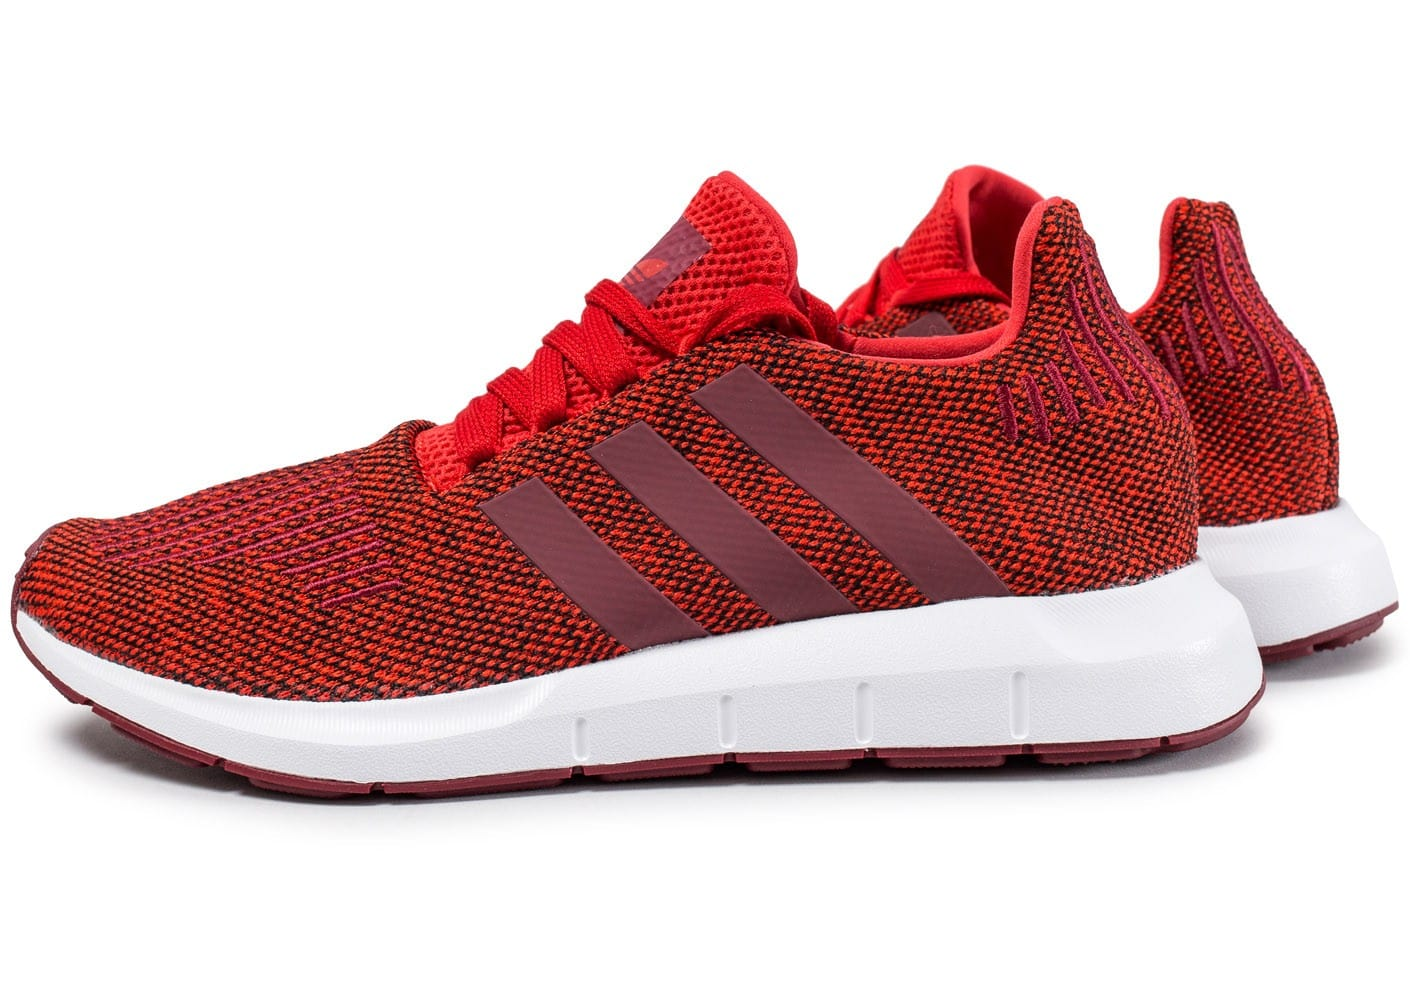 adidas swift run rouge chaussures homme chausport. Black Bedroom Furniture Sets. Home Design Ideas